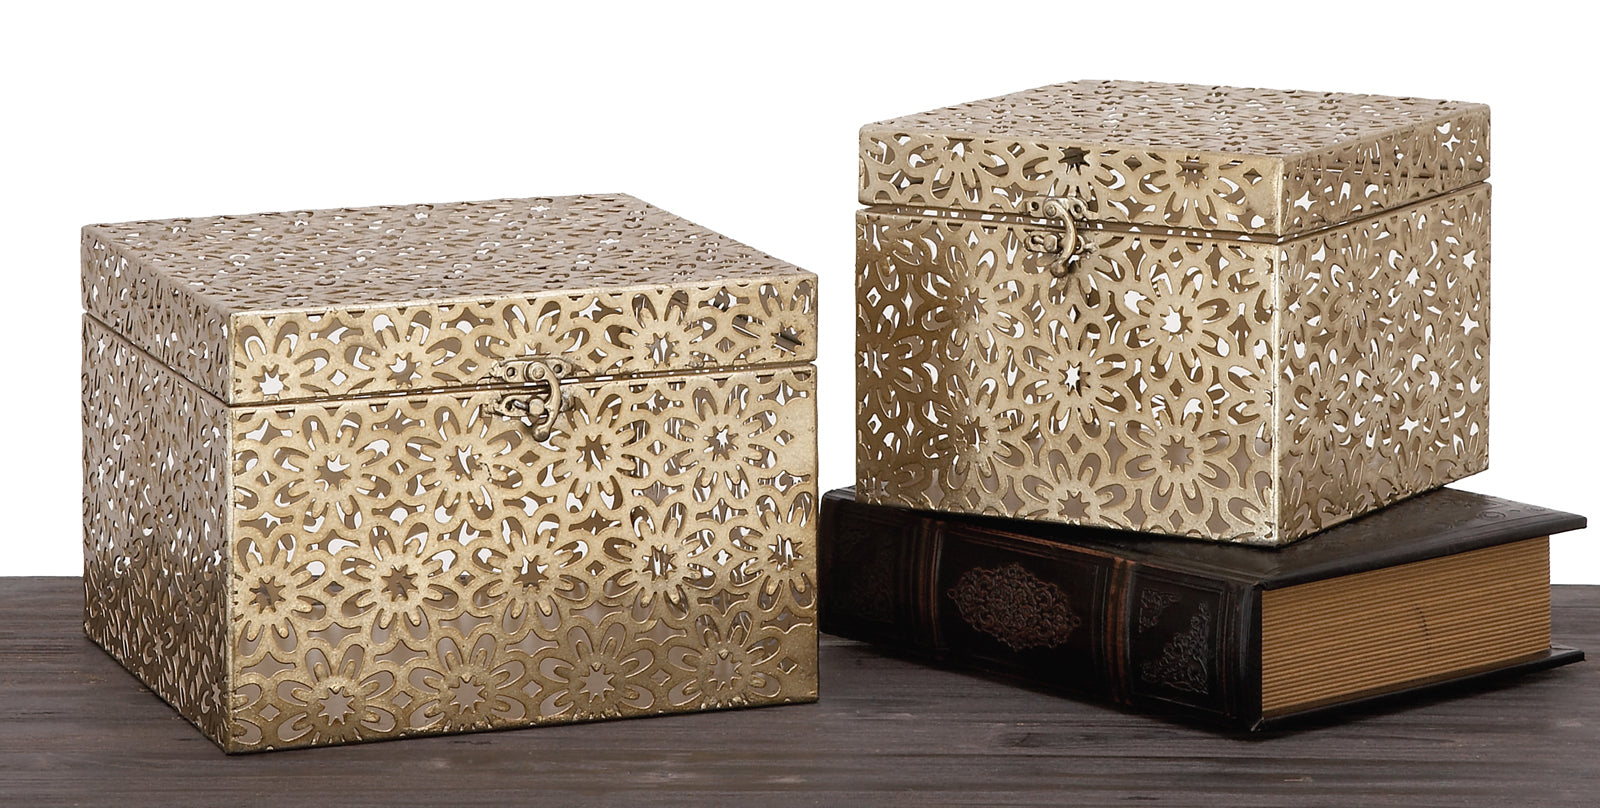 Urban Designs Champagne 2-Piece Metal Keepsake Decorative Box